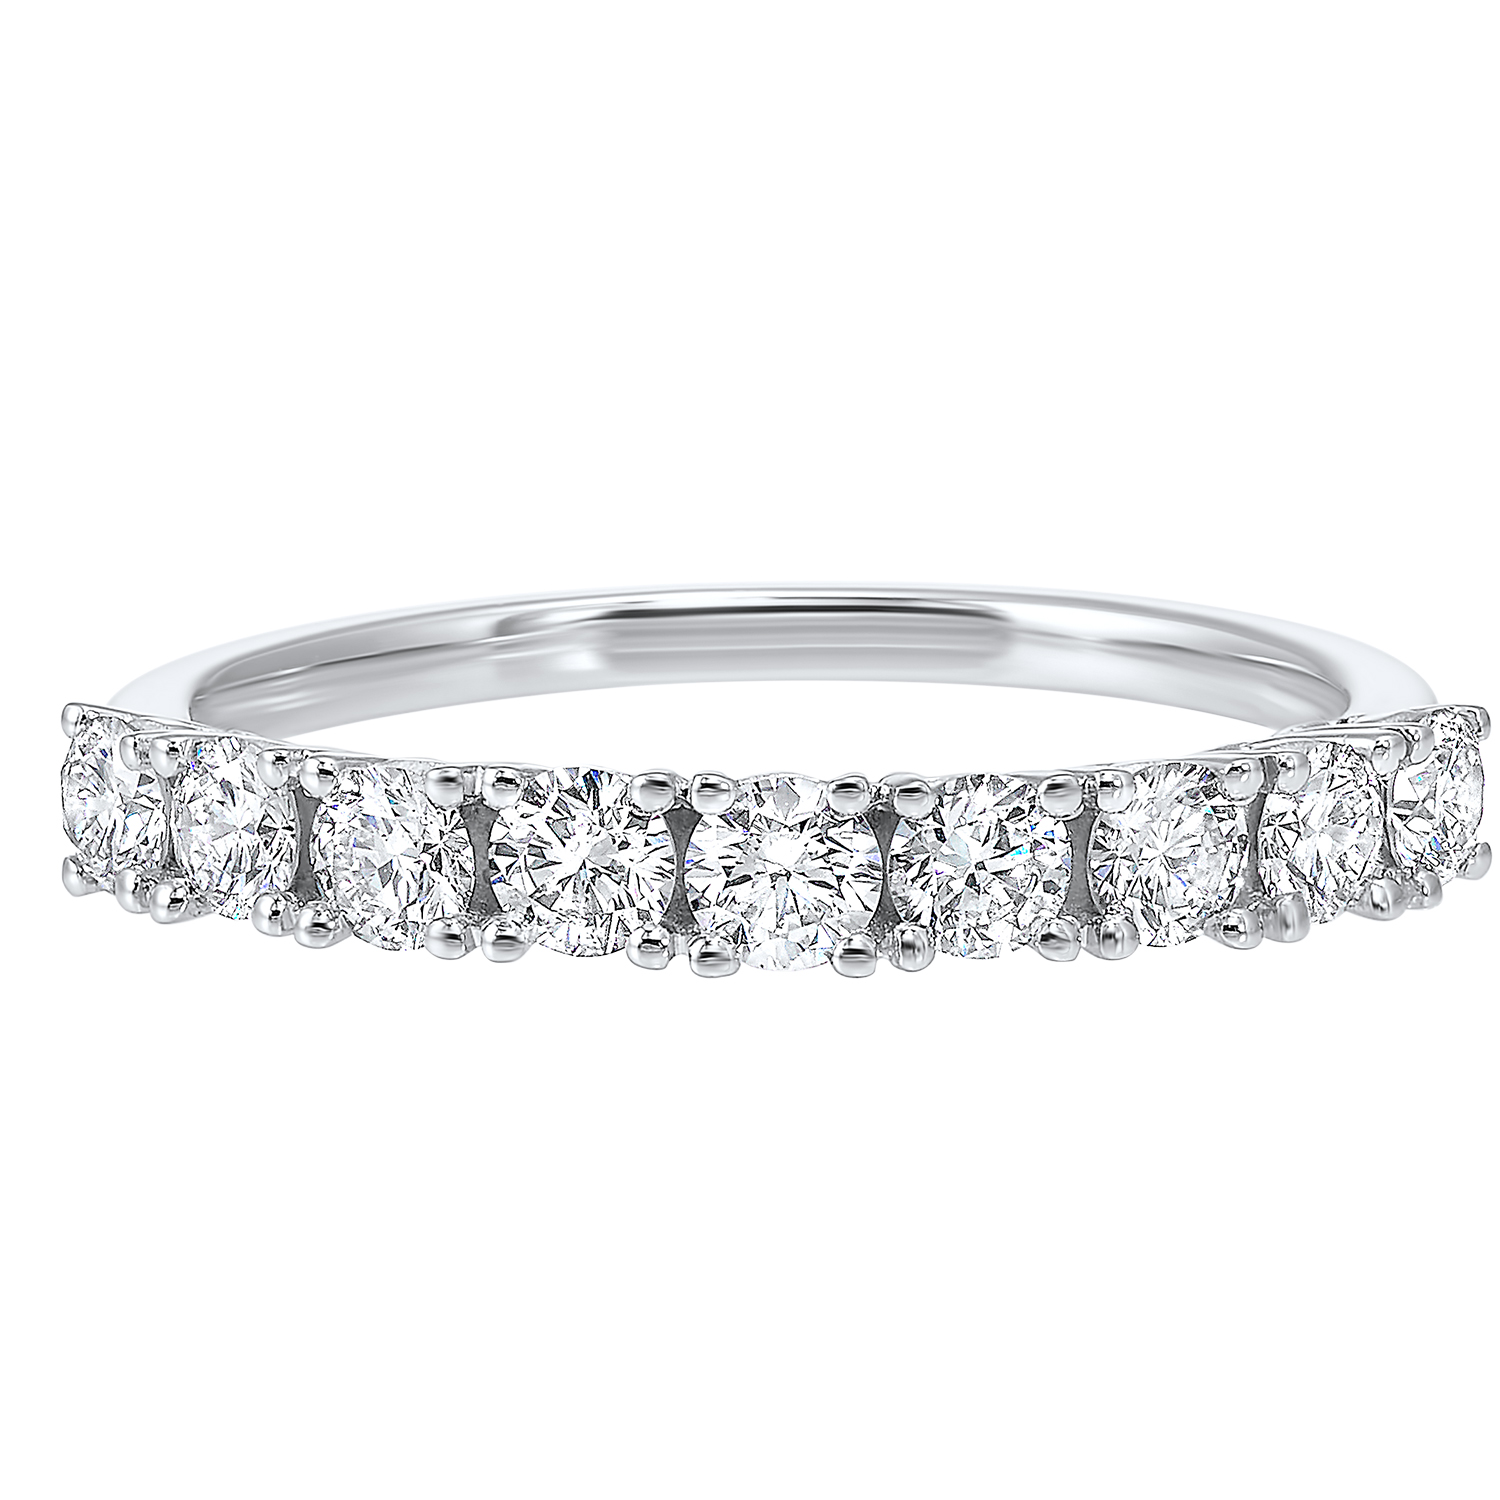 14K White Gold 9 Stone Prong Diamond Band (3/4 ct. tw.) Moseley Diamond Showcase Inc Columbia, SC